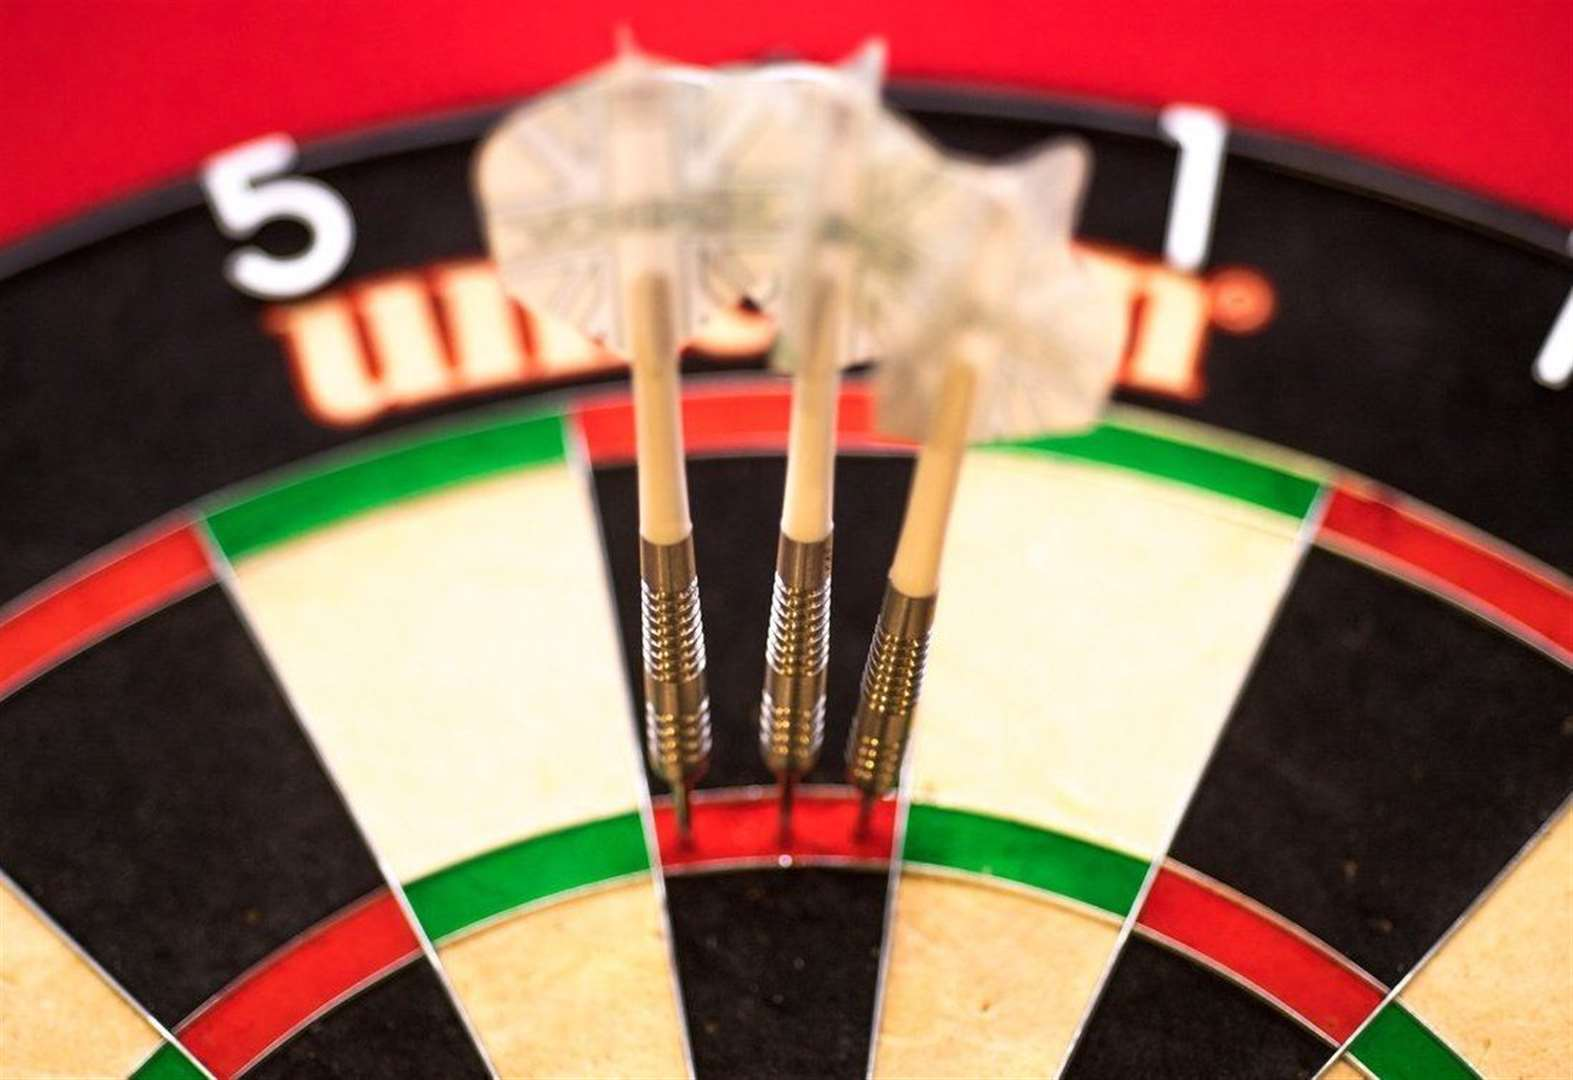 Inverness Winter Darts League returns to action